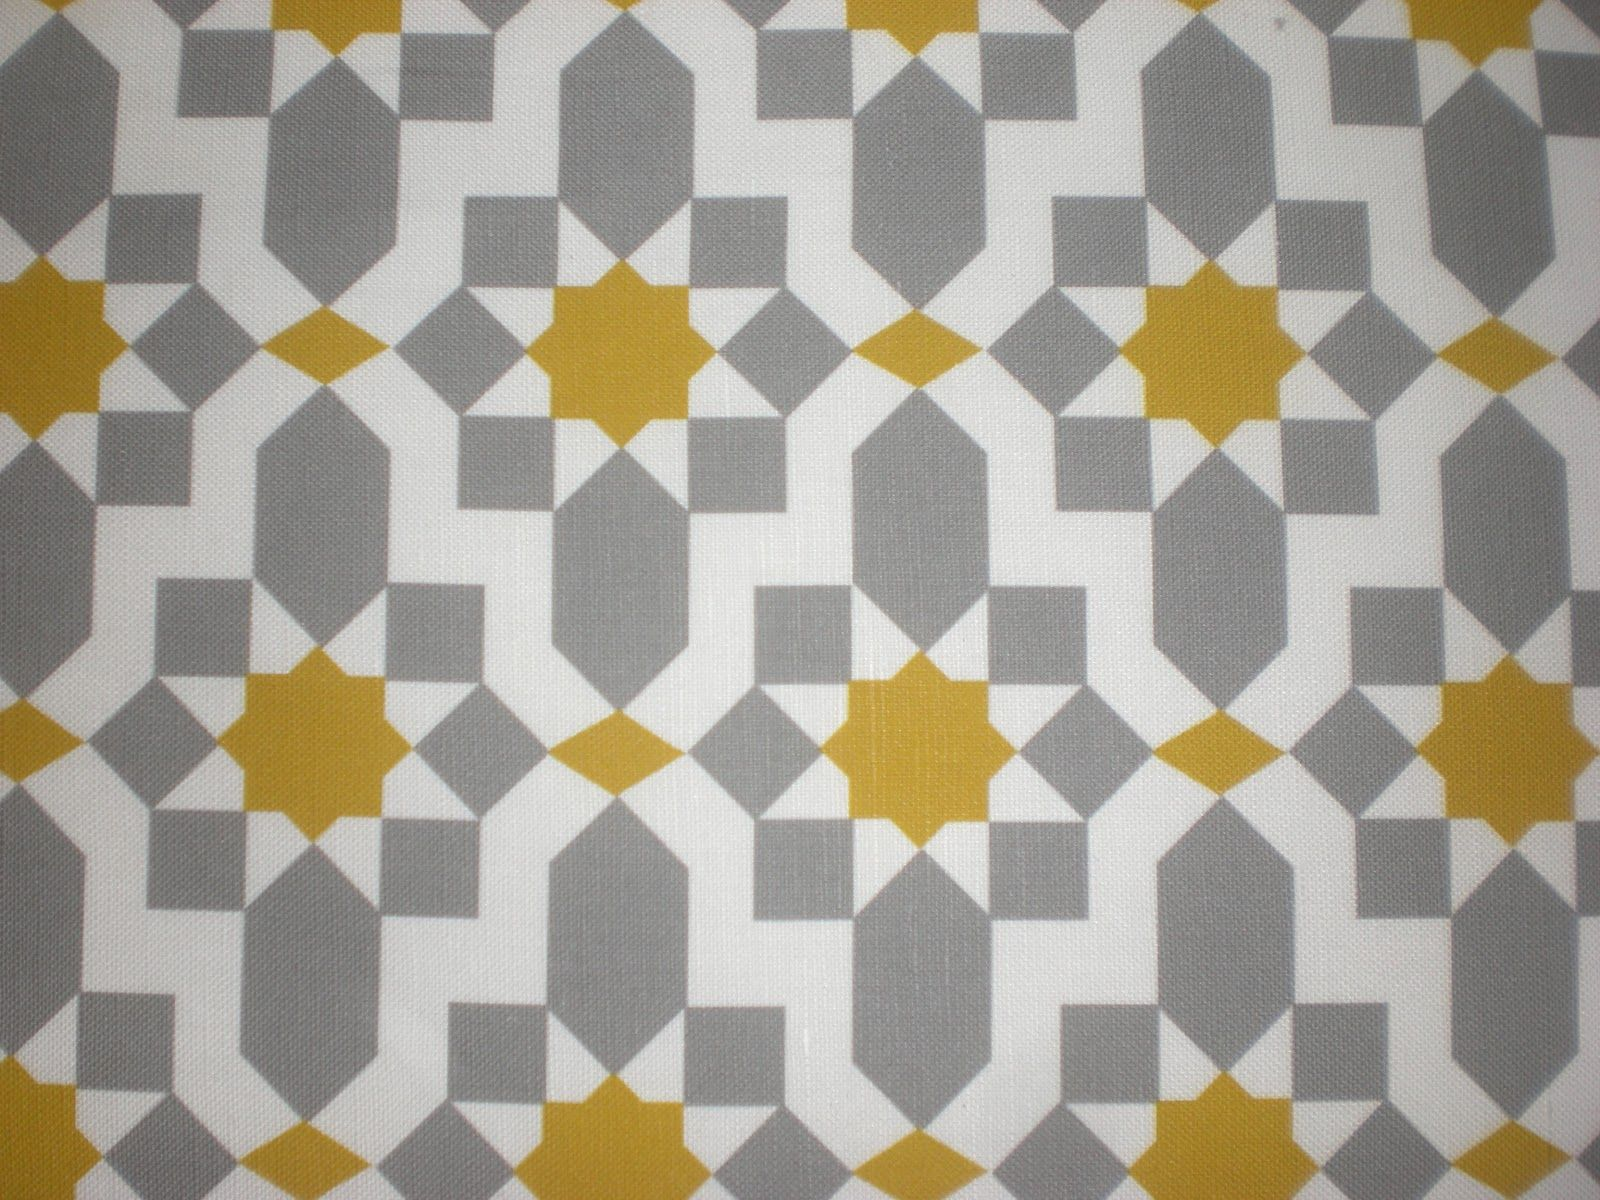 Smart Yet Whimsical Fabric Pattern With A Bold Yellow For